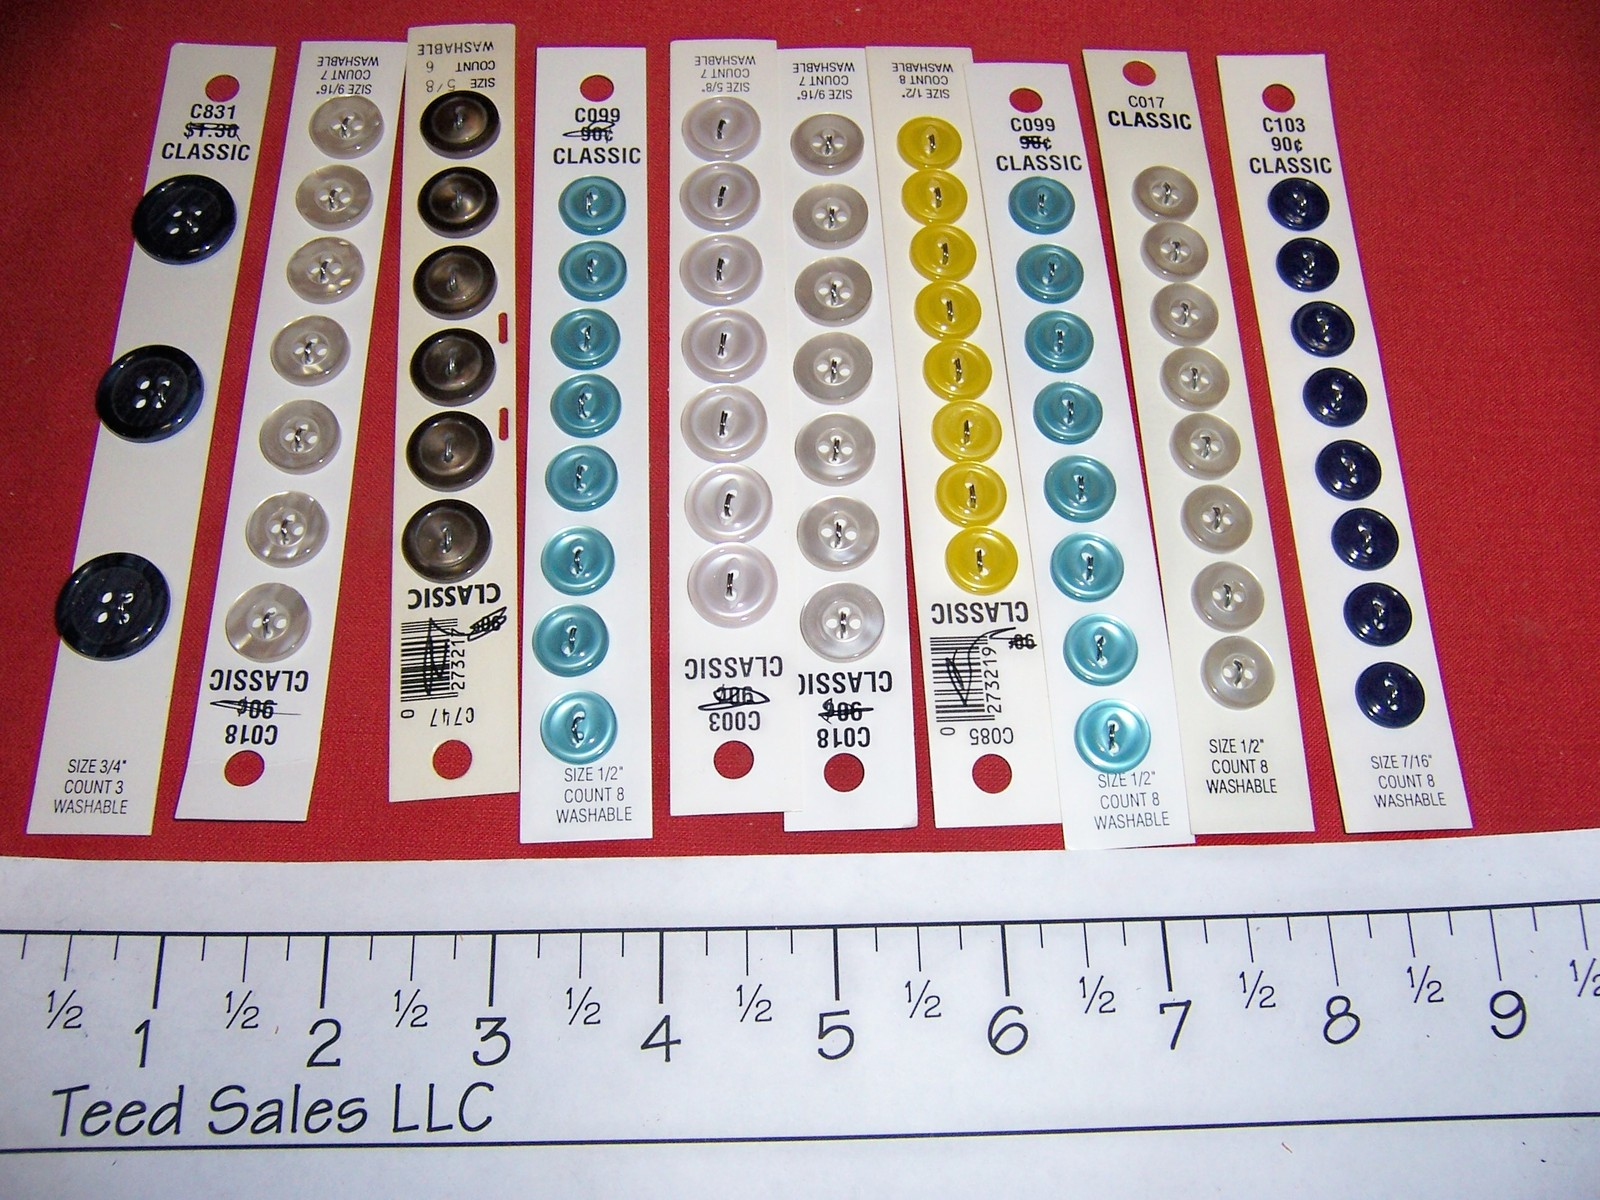 New Blumenthal Lansing Sewing Buttons Classic I & II